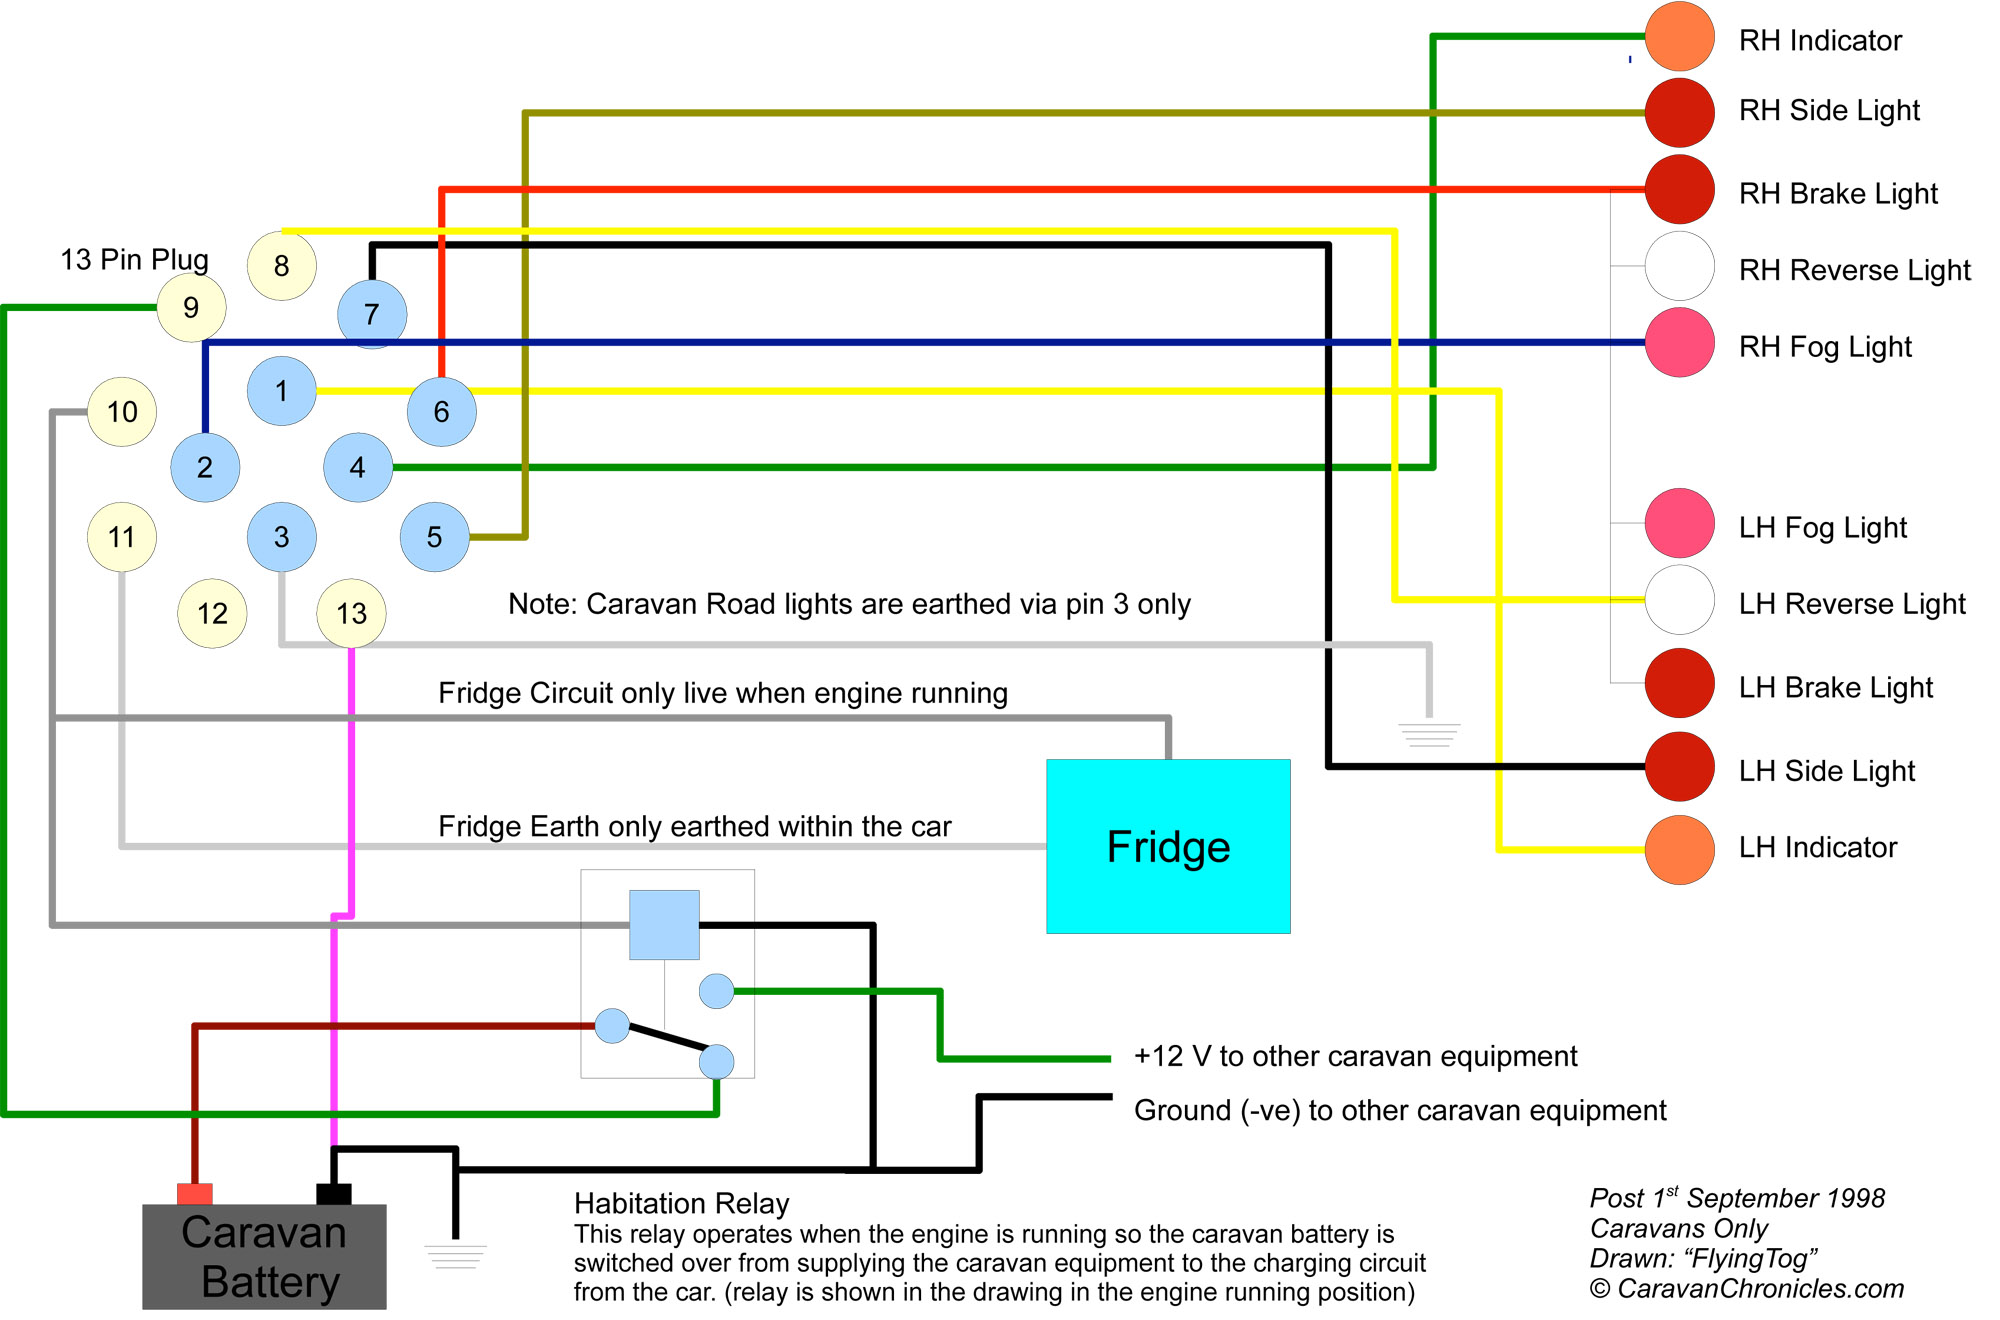 12n trailer wiring diagram wiring diagram list 7-Way Trailer Wiring Diagram